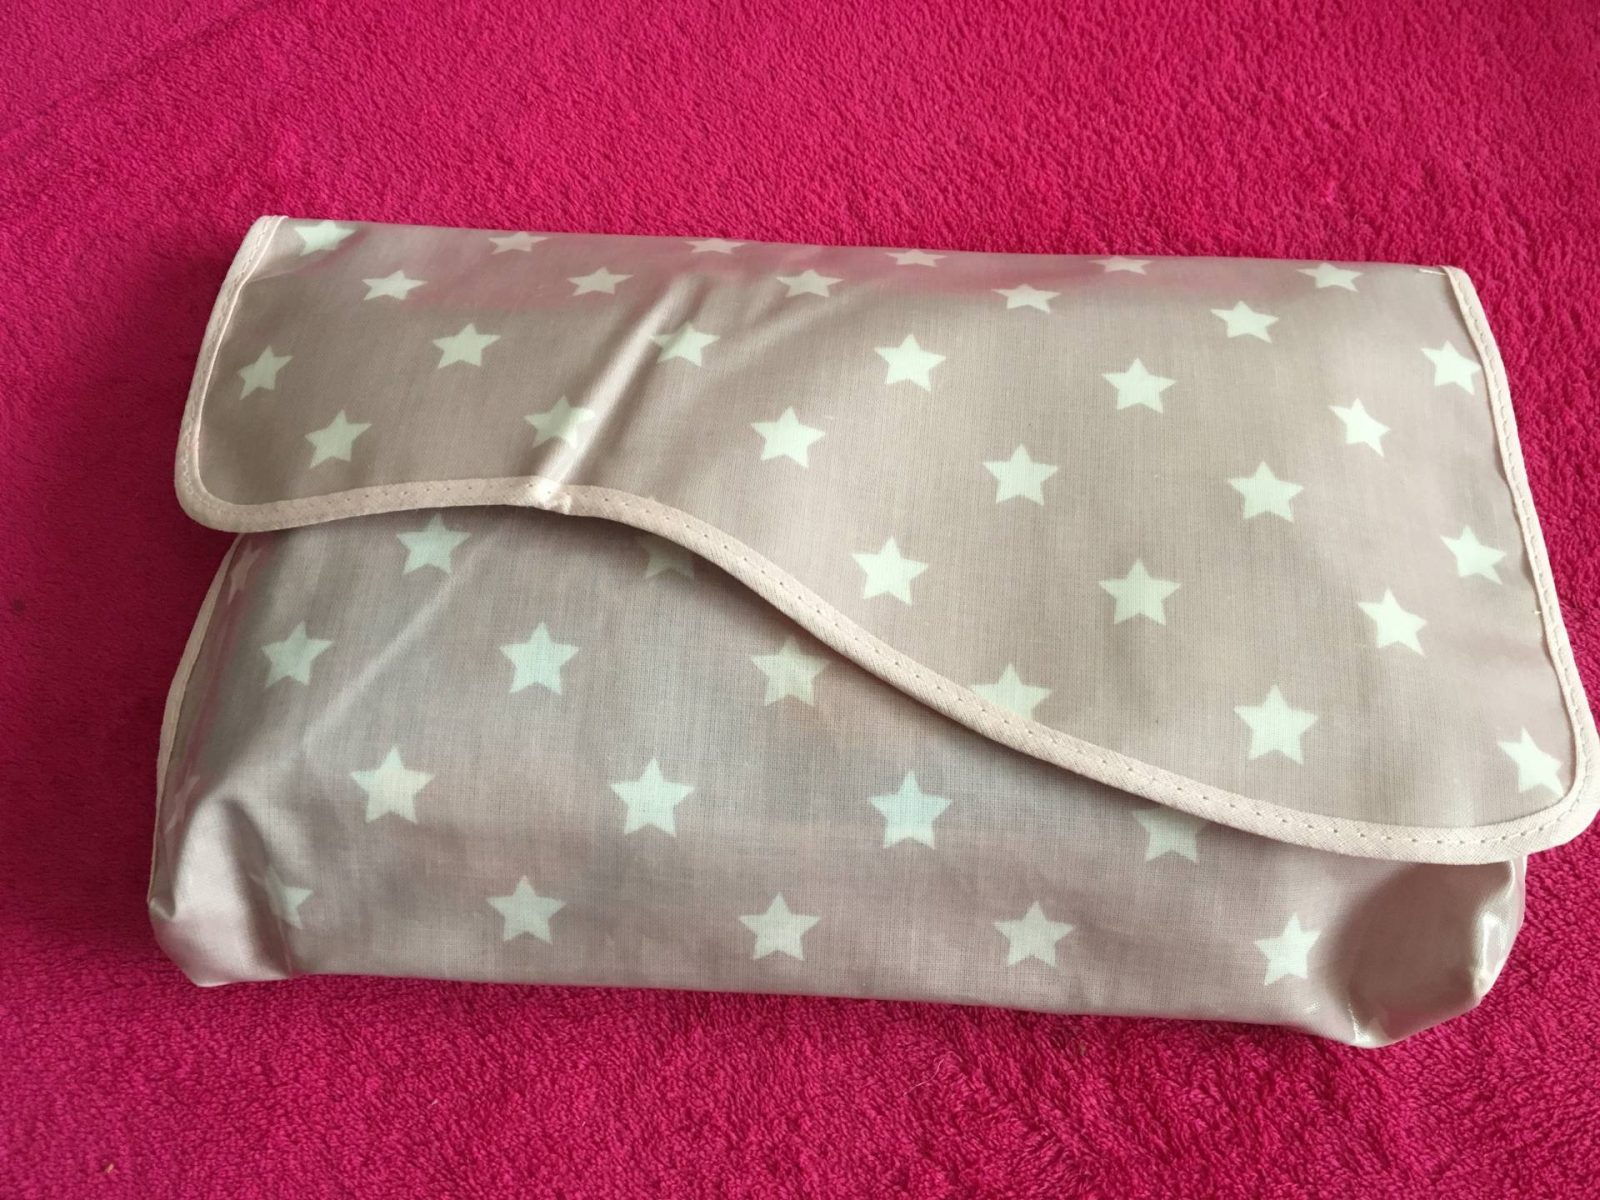 Review: Messy Clutch Bag and Mini Mat…